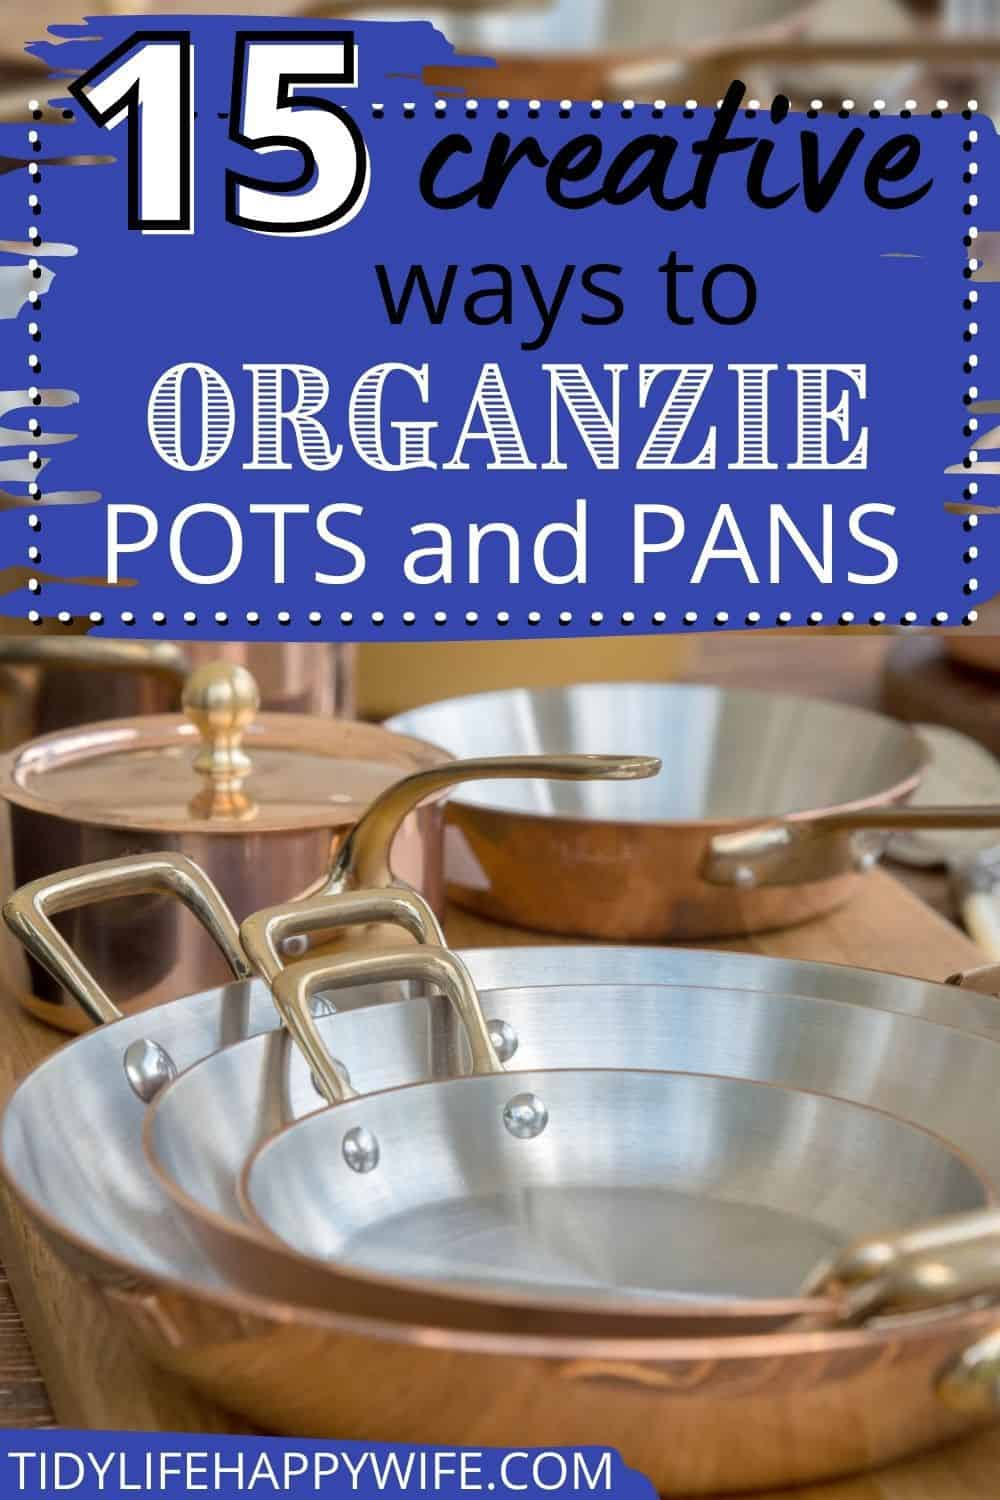 Tired of your pots and pans falling out of your cabinet? Learn how to organize pots and pans in a cabinet or drawer, on the wall, hanging from the ceiling, or hidden in a different area. Organizing solutions for small spaces. DIY ideas to meet all of your pots and pans organization needs. via @Tidylifehappywife